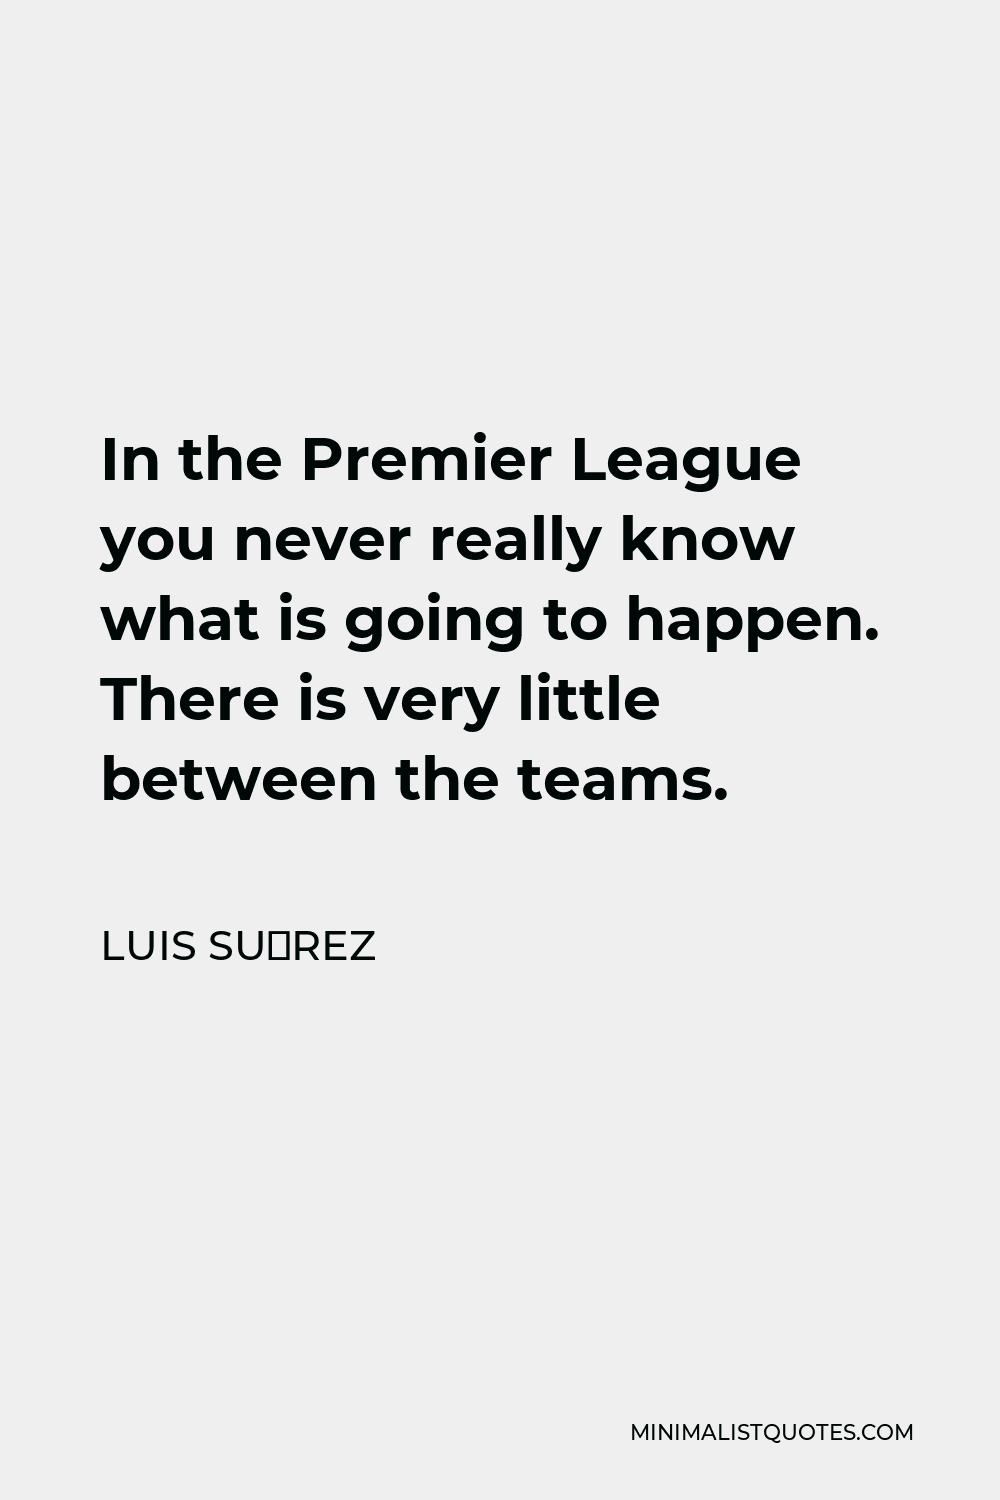 Luis Suárez Quote - In the Premier League you never really know what is going to happen. There is very little between the teams.